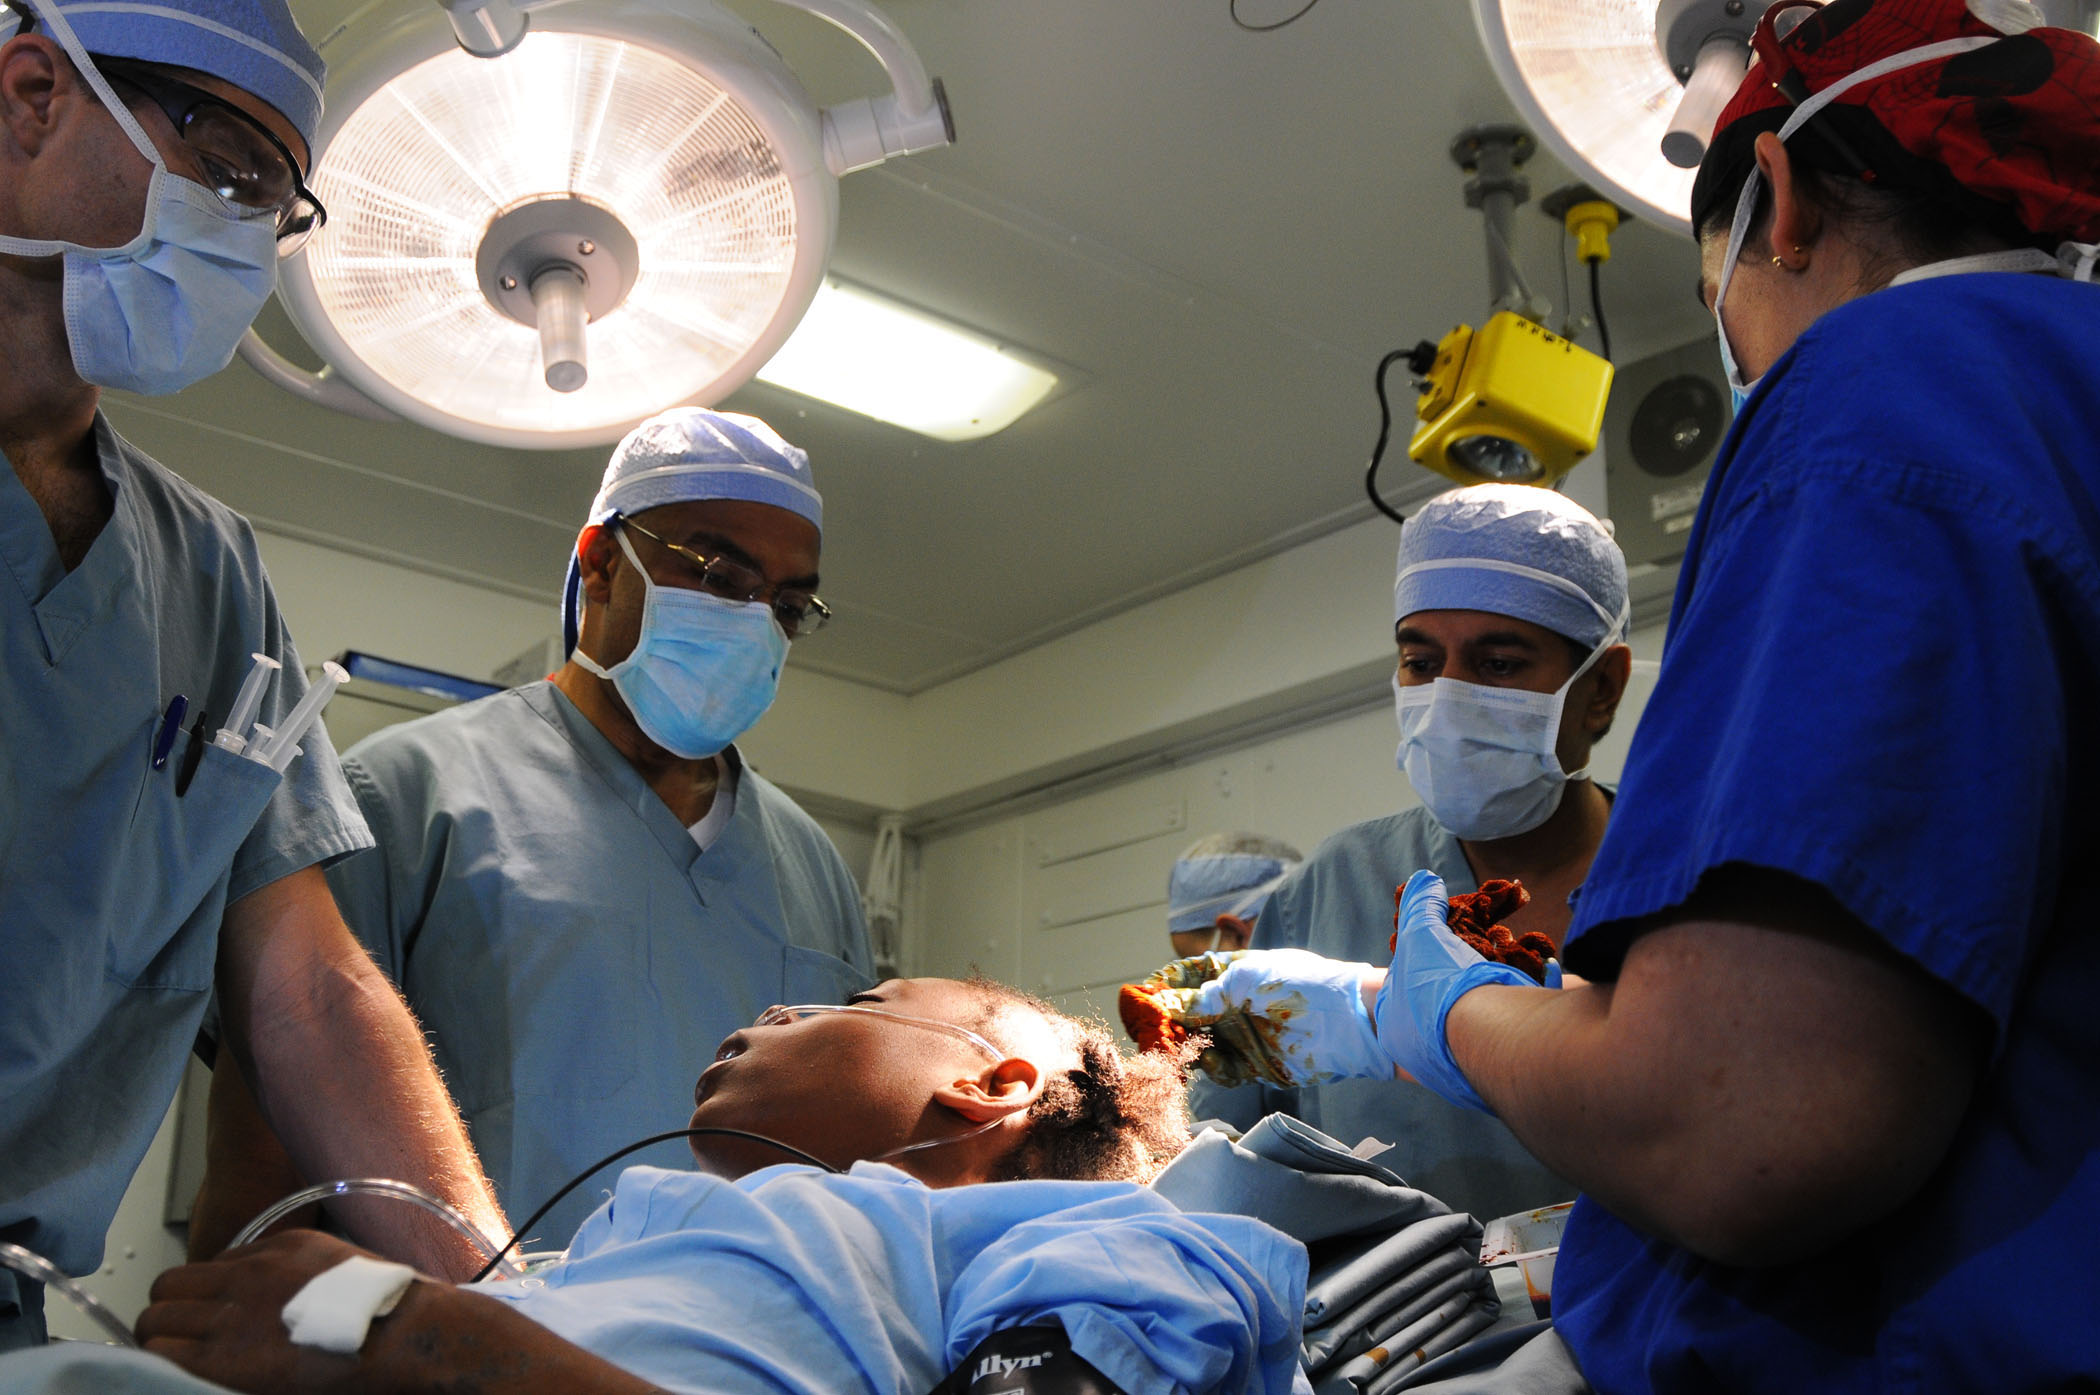 File:US Navy 100118-N-8878B-078 Surgeons perform surgery on a